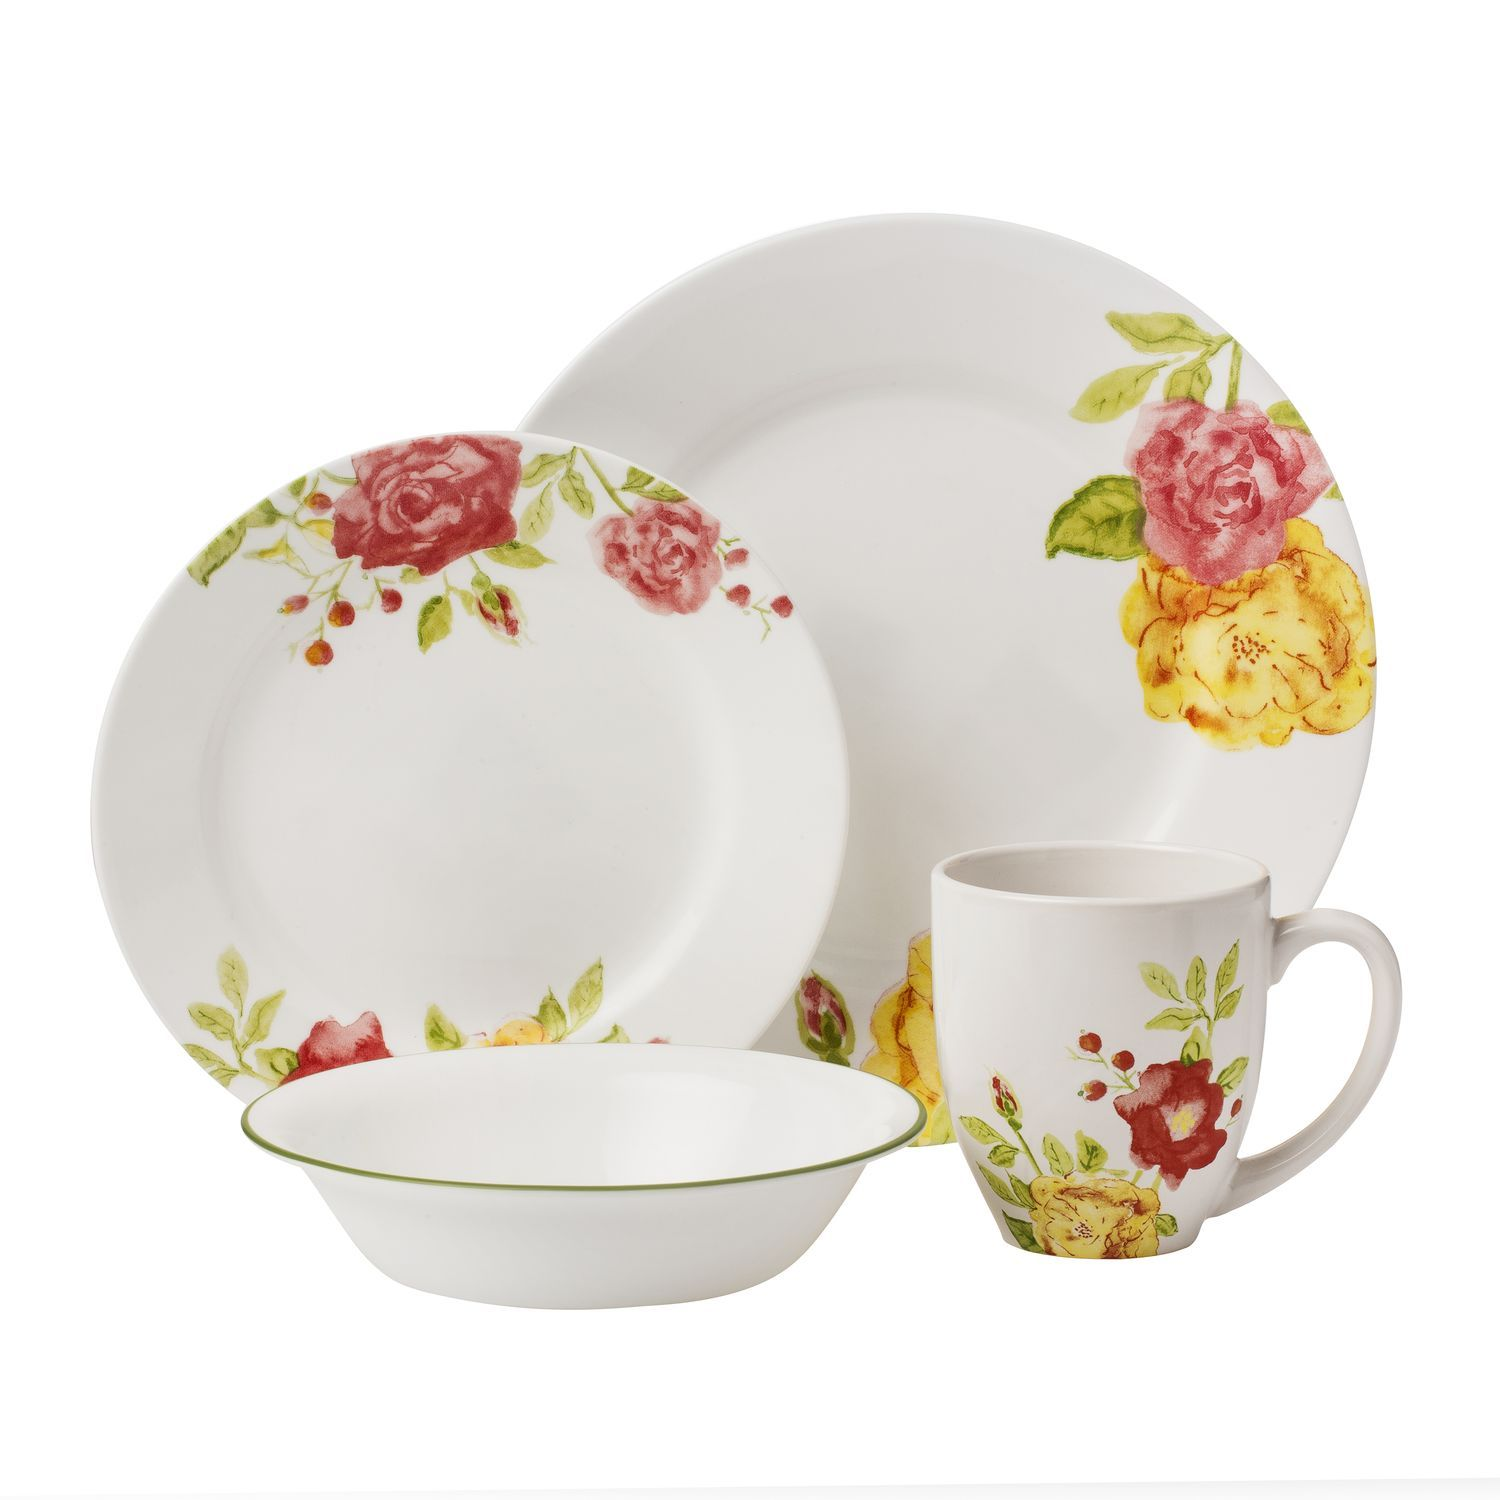 Corelle Boutique Emma Jane 16 Pc Dinnerware Set Corelle